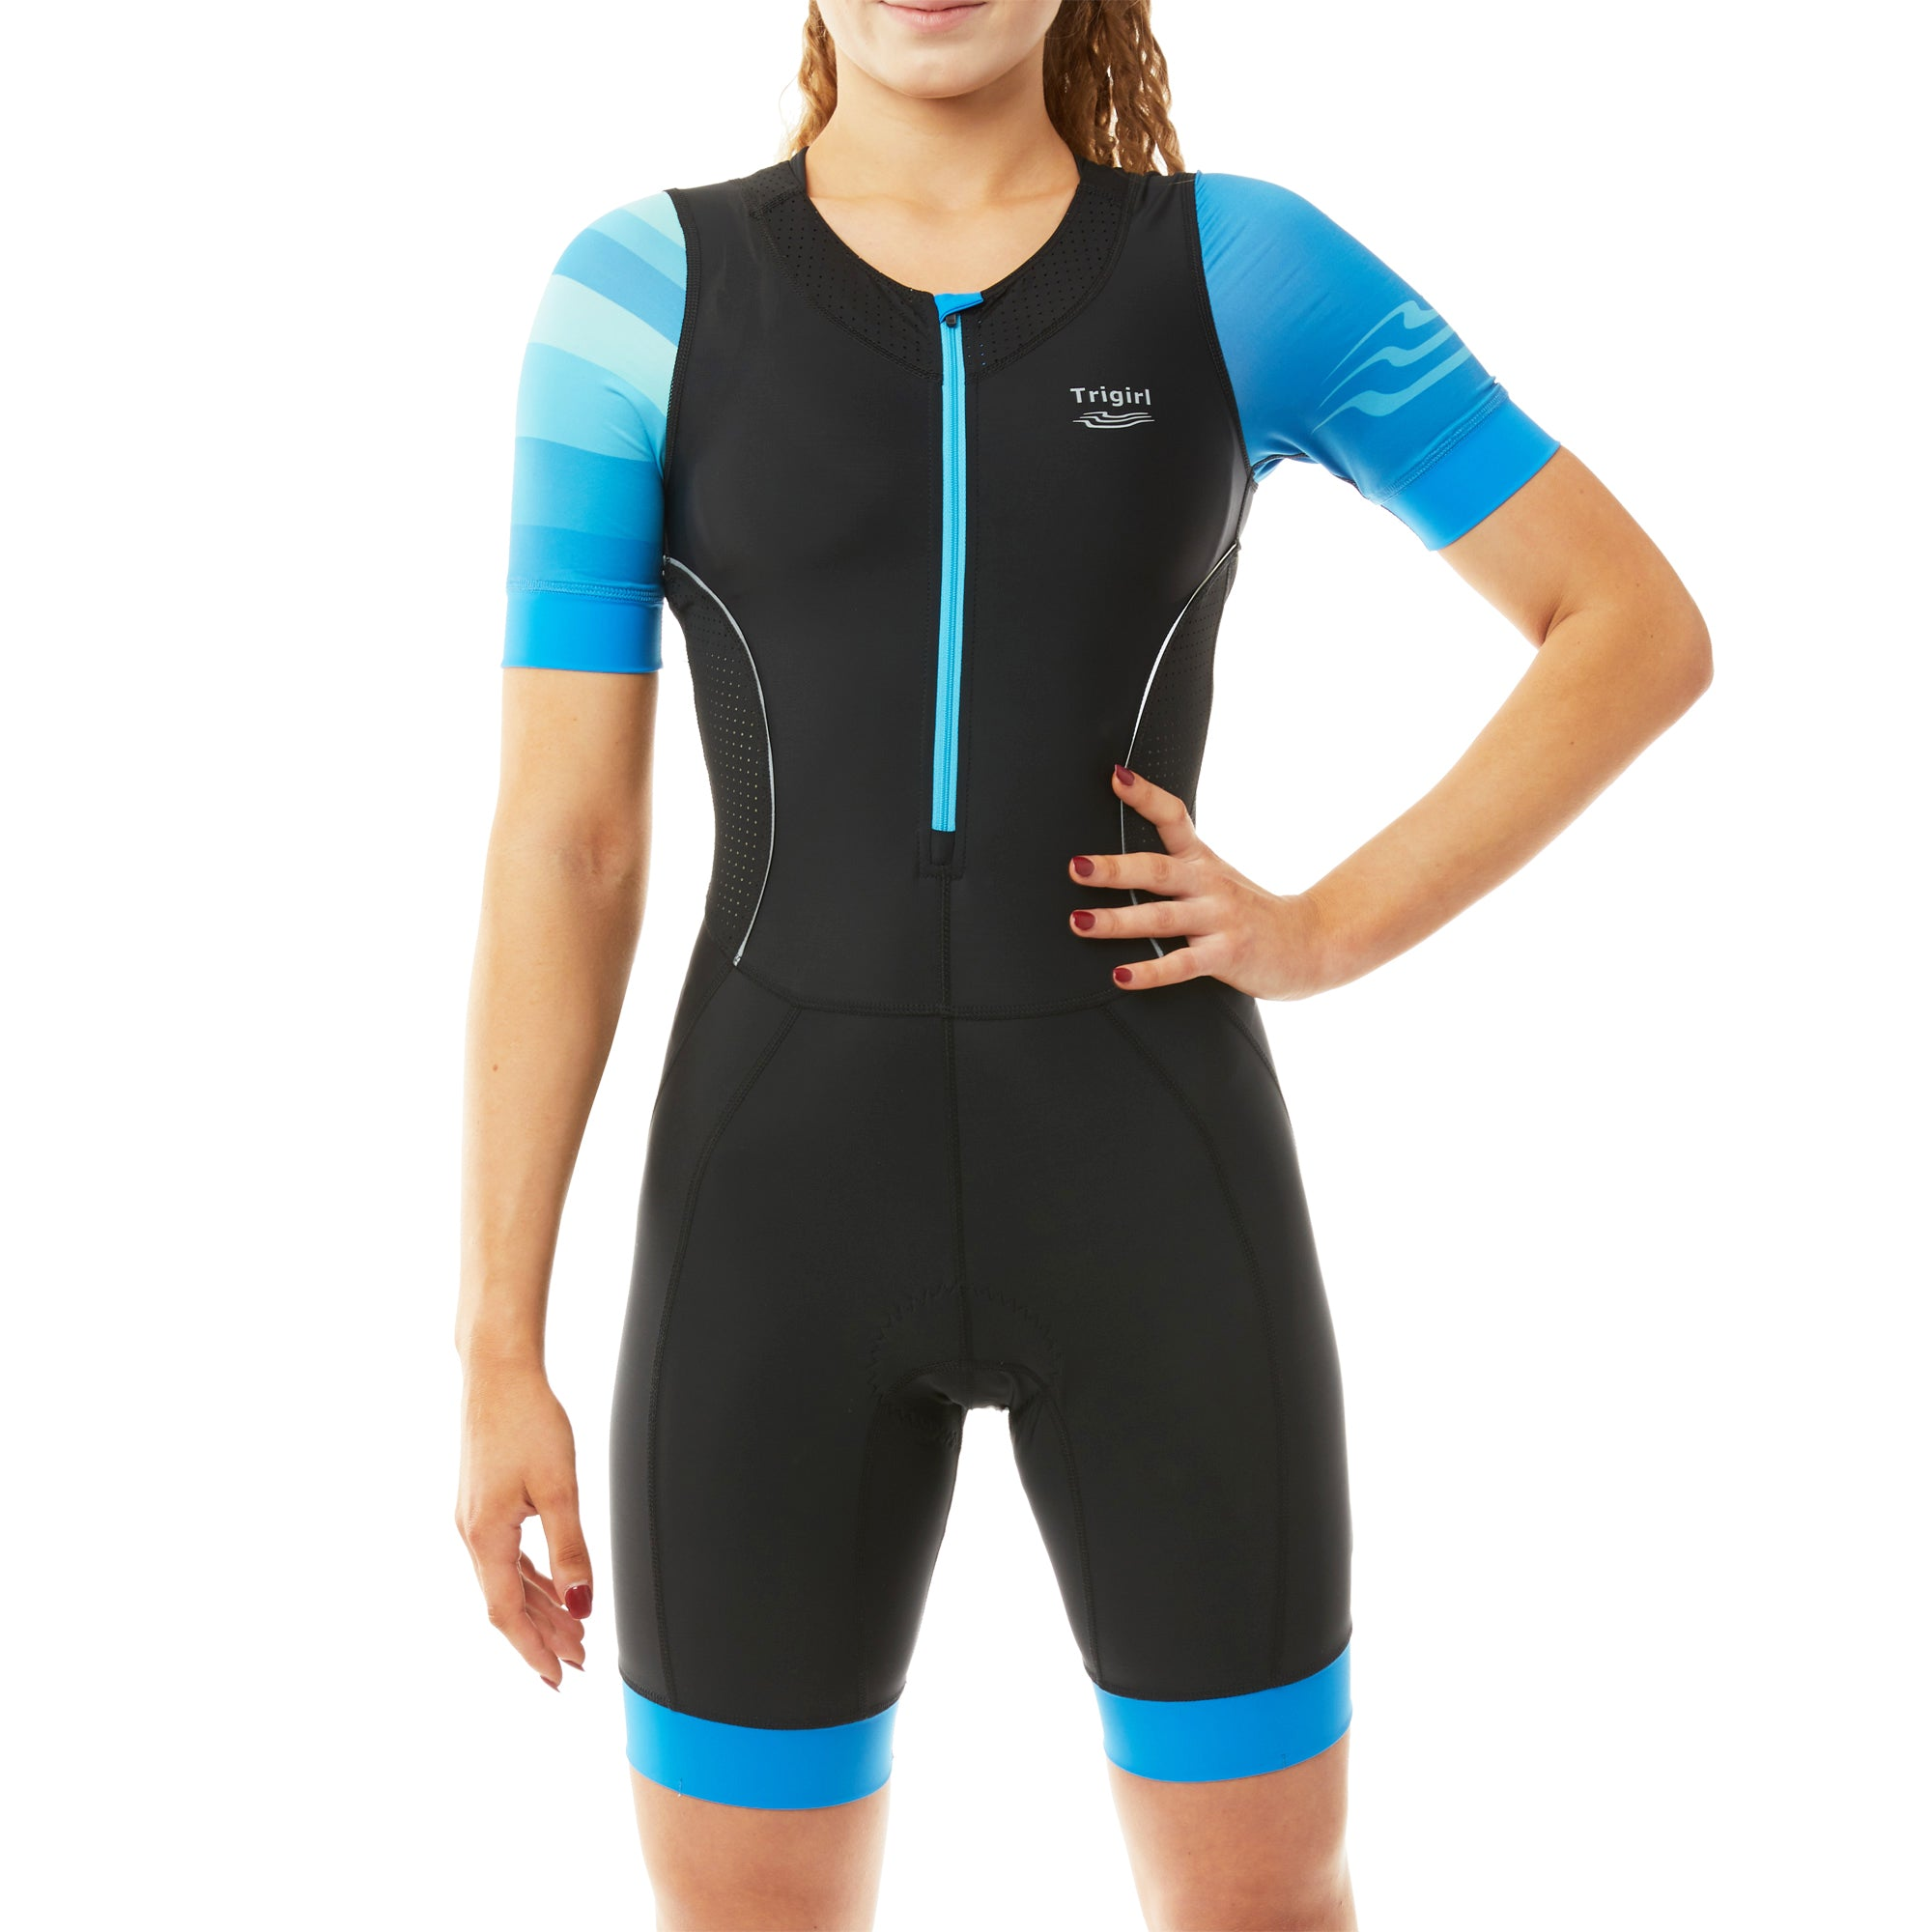 Star Trisuit with/ without Support in Mermaid Blue - L, XL